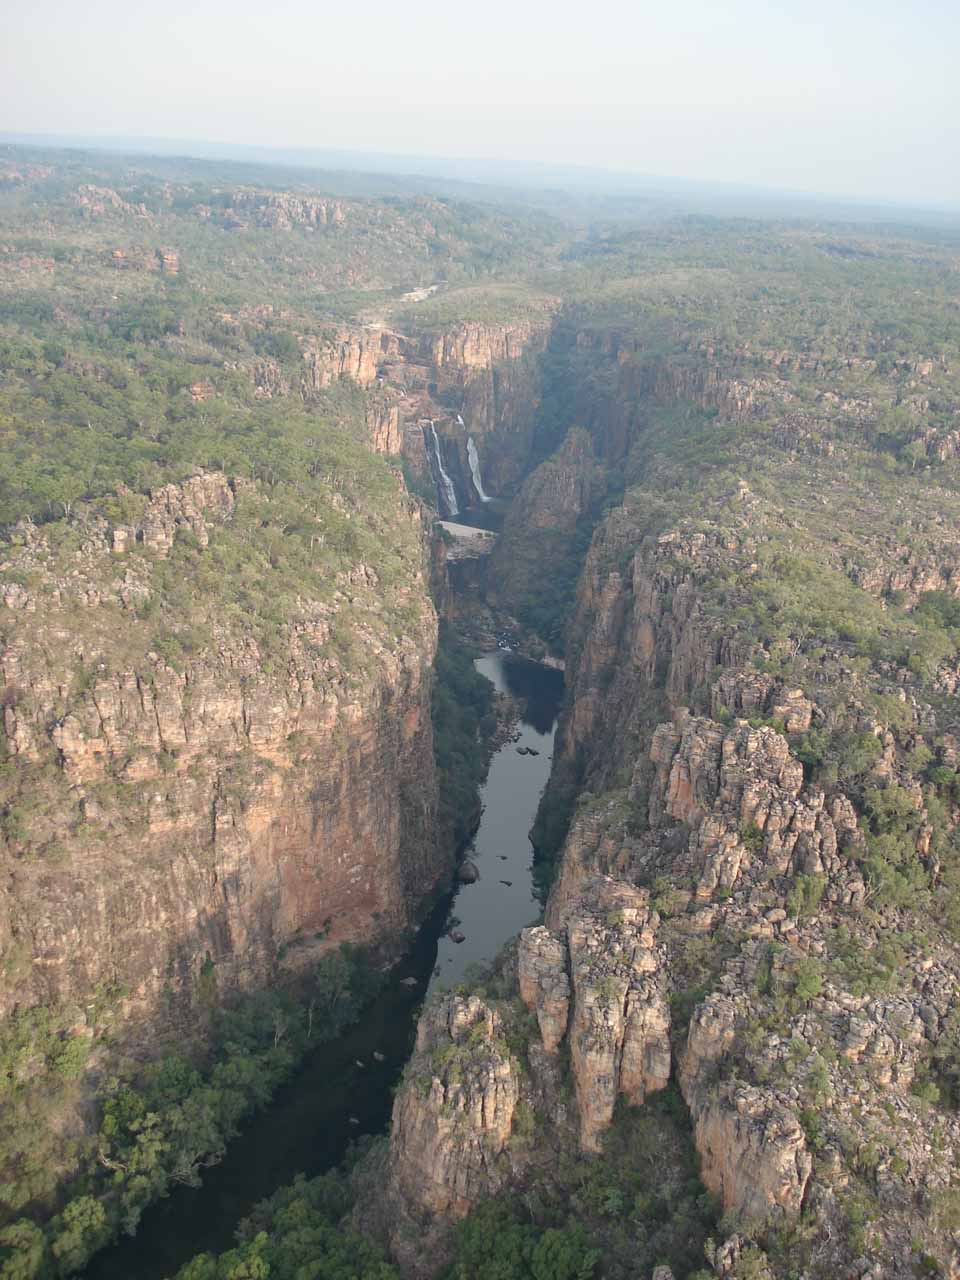 Looking down at the narrow gorge containing Twin Falls